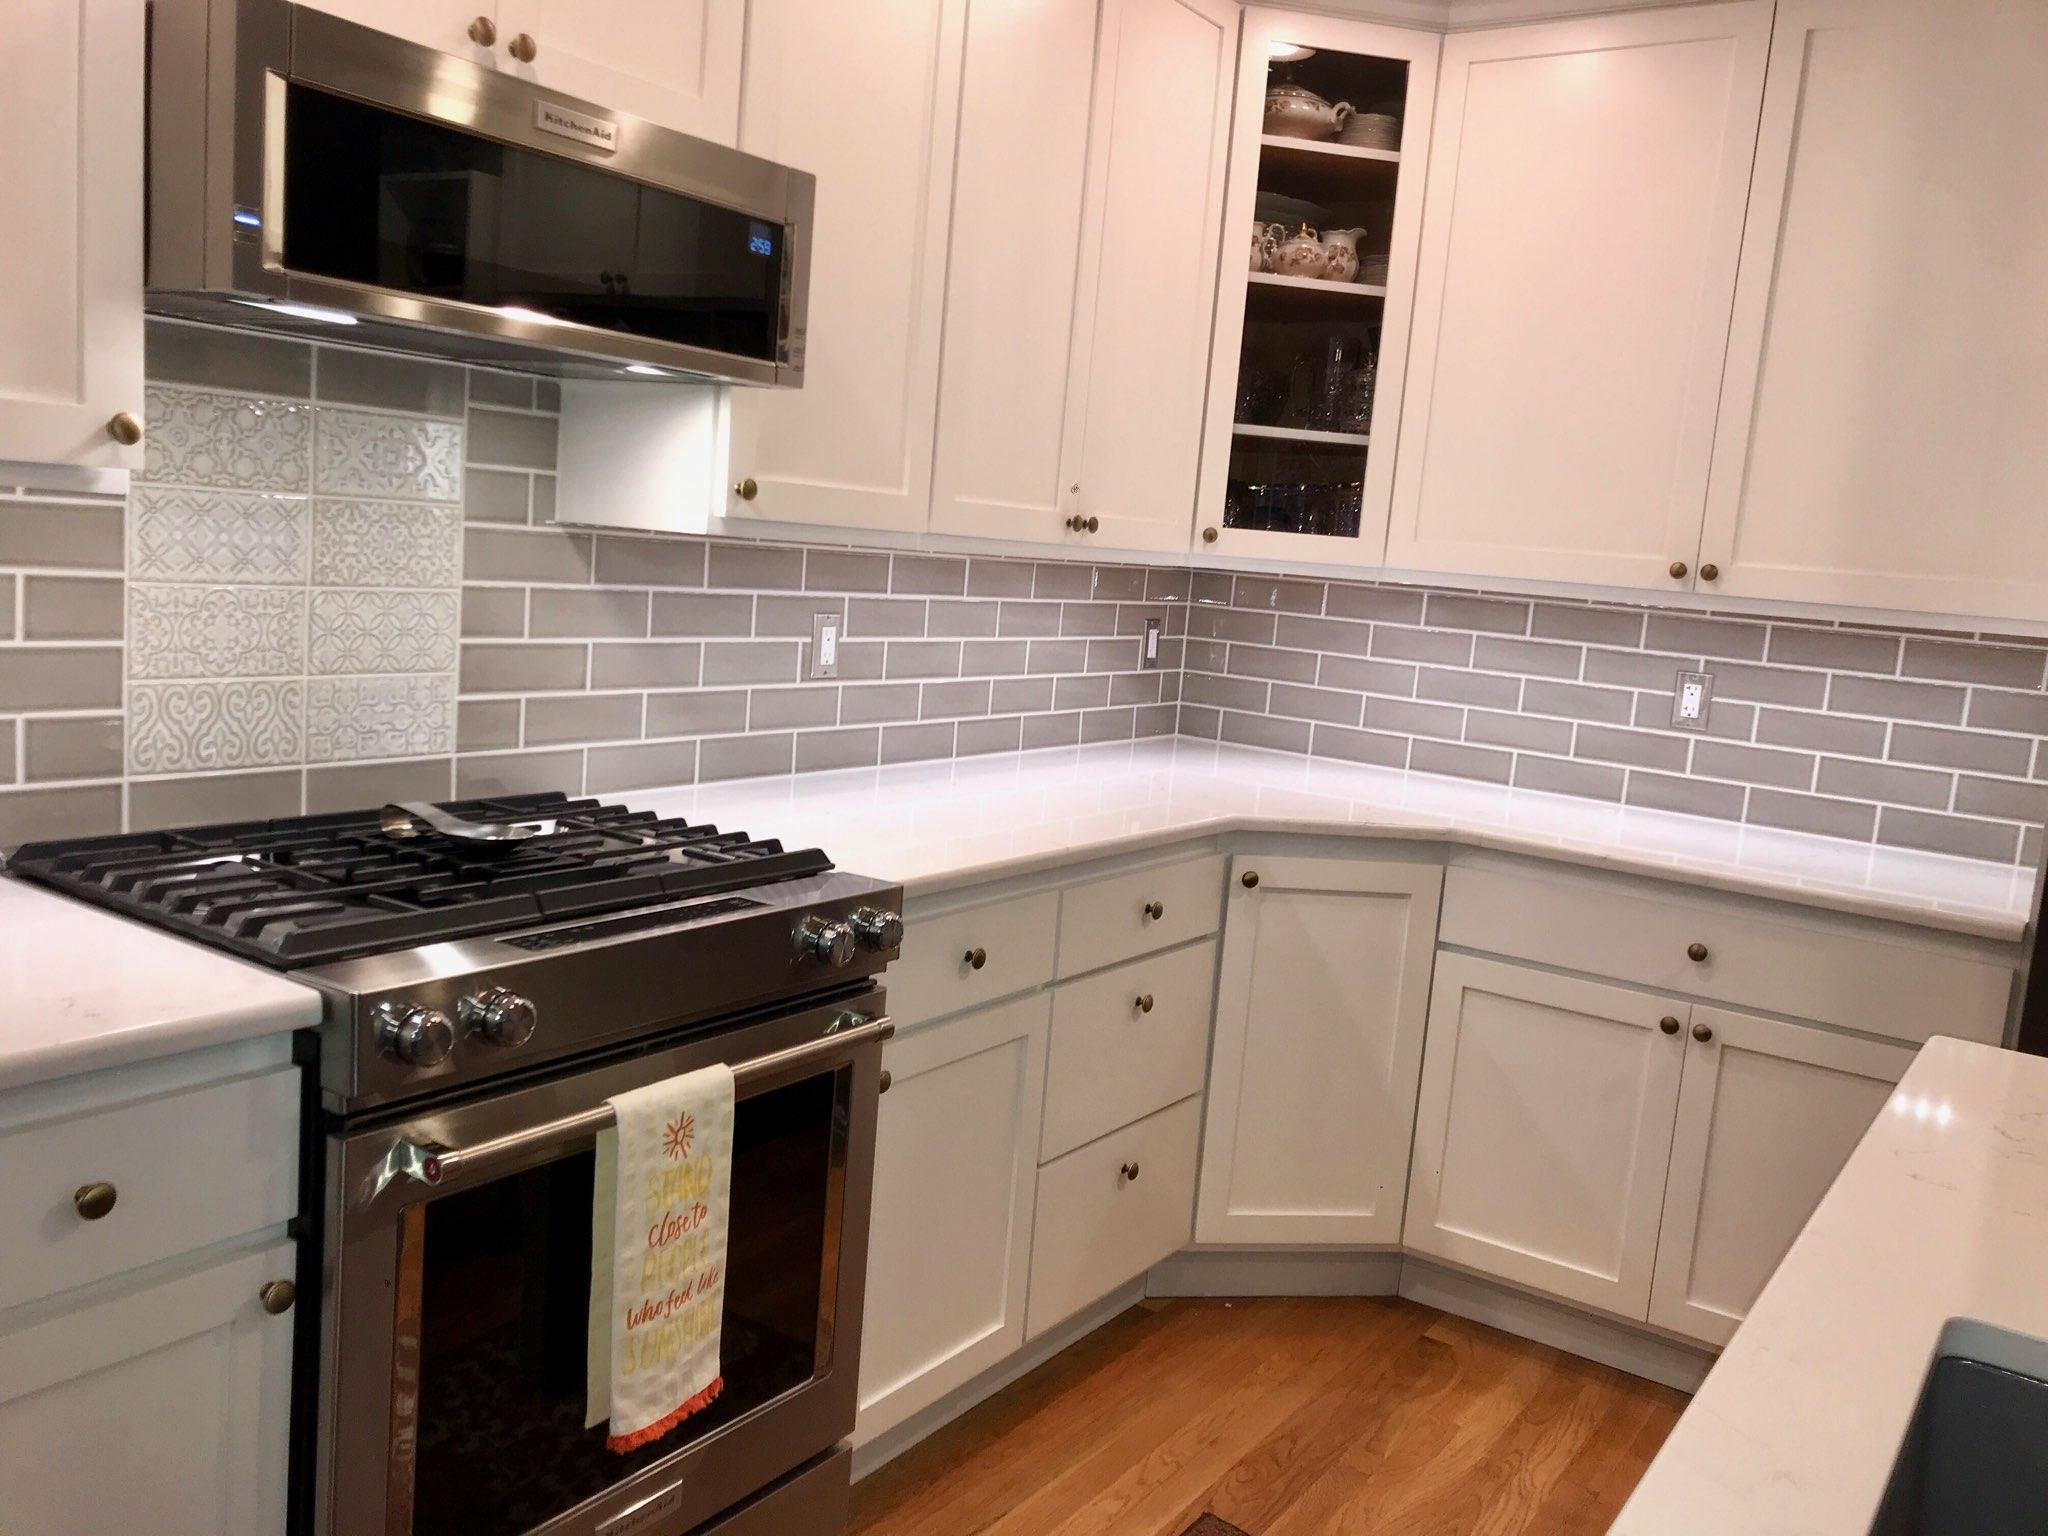 White Quartz and Gray subway tile in 2020 Quartz kitchen